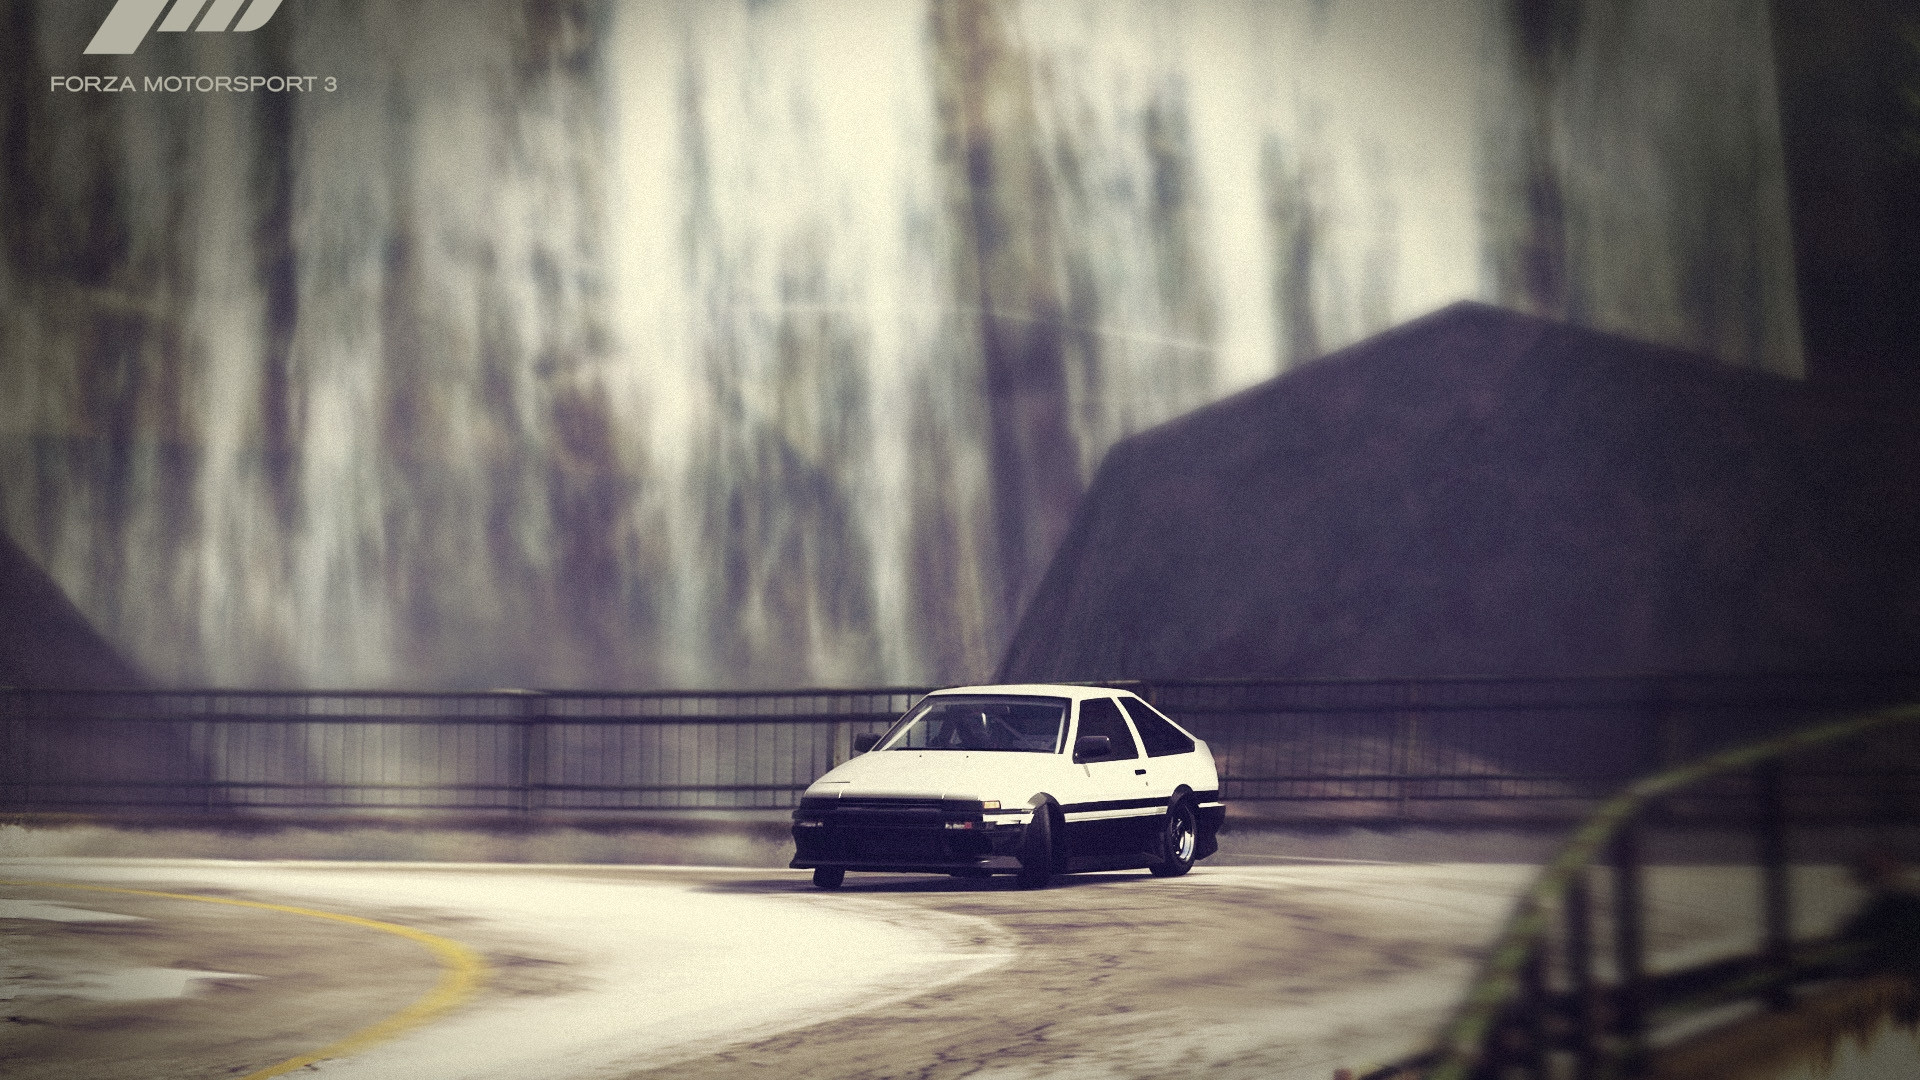 1920x1080 Preview wallpaper forza motorsport, car, road, drift, fence